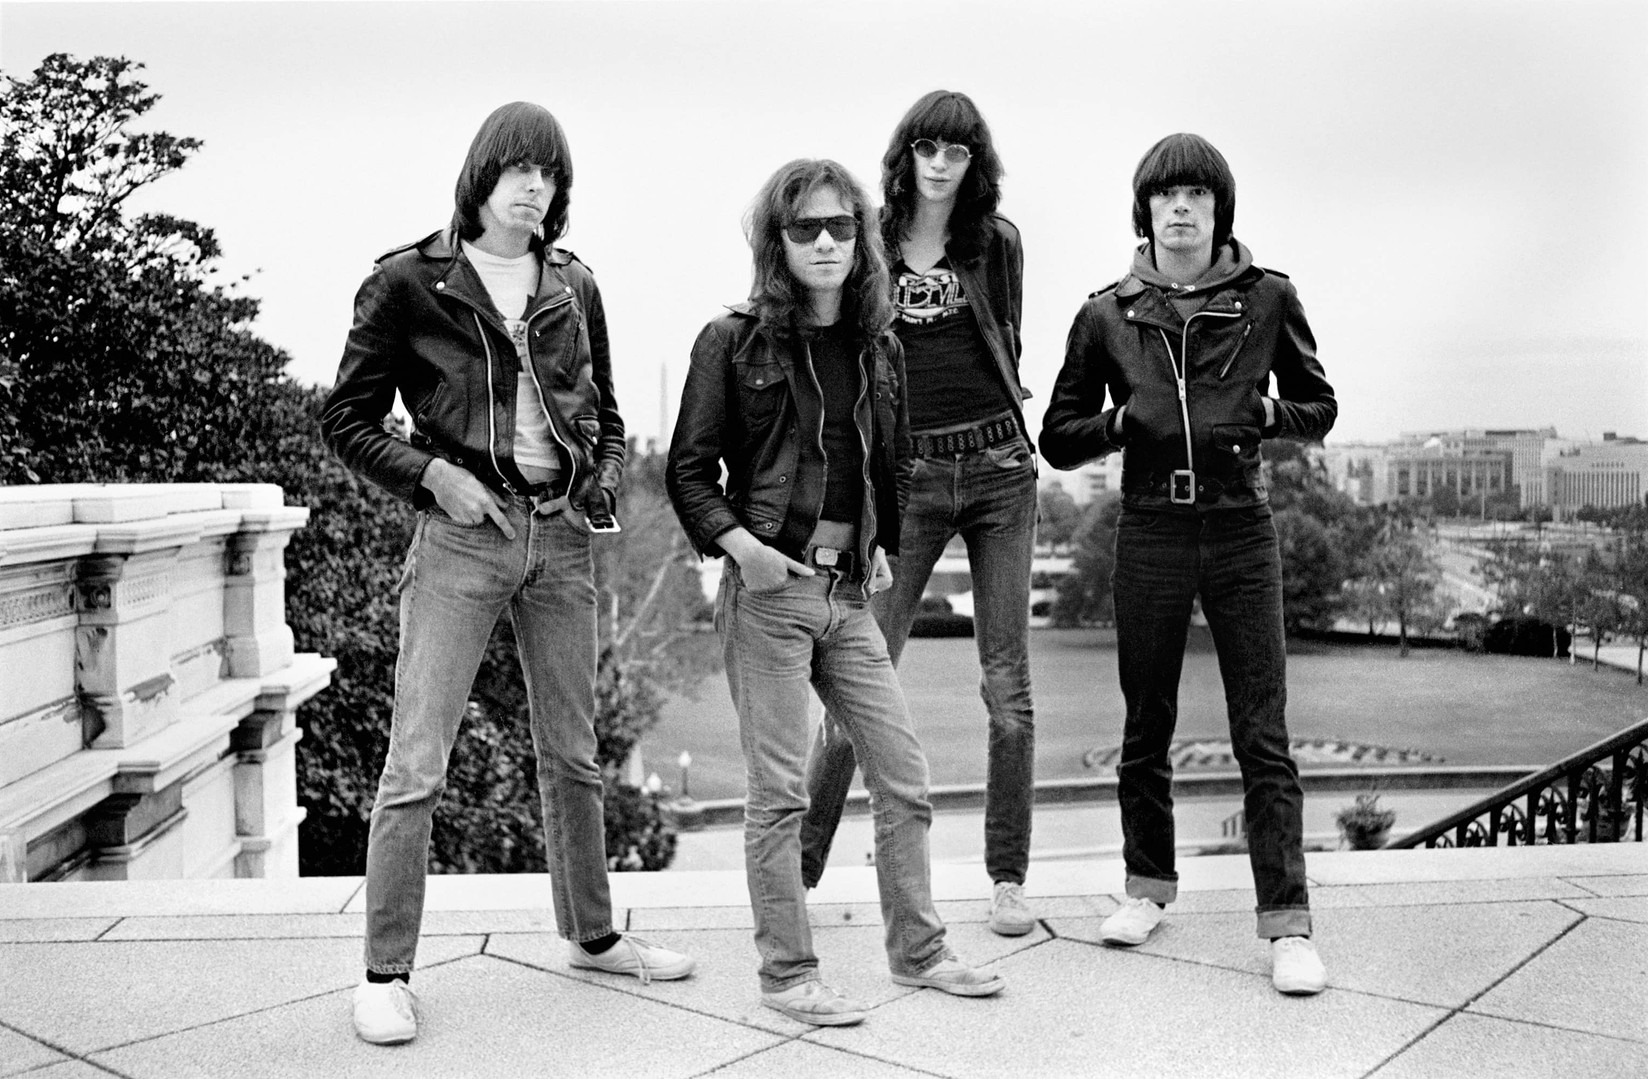 """DANNY FIELDS """"My Ramones"""" Portfolio 20 photographs Made by Danny Fields in 2020  Dee Dee Ramone Silver Gelatin Fiber Print Premium Cotton Photography Paper  Size 11X 14inches / 28x 35,5cm  Edition 5 + 2 A/P Stamp, numbered & signed by the artist"""